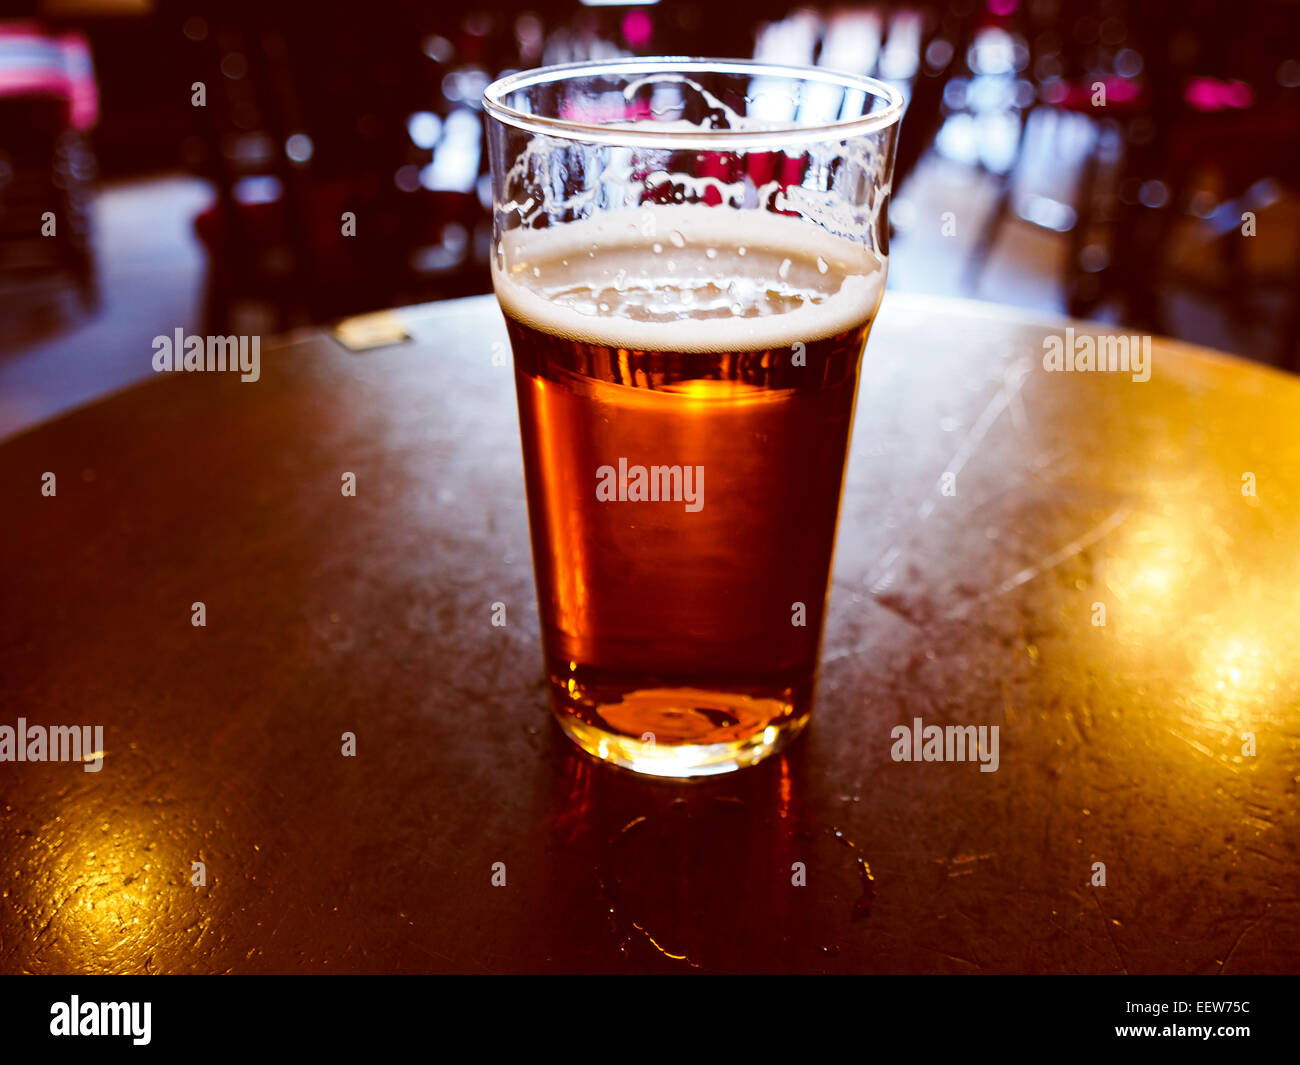 Pint of British bitter ale beer - Stock Image